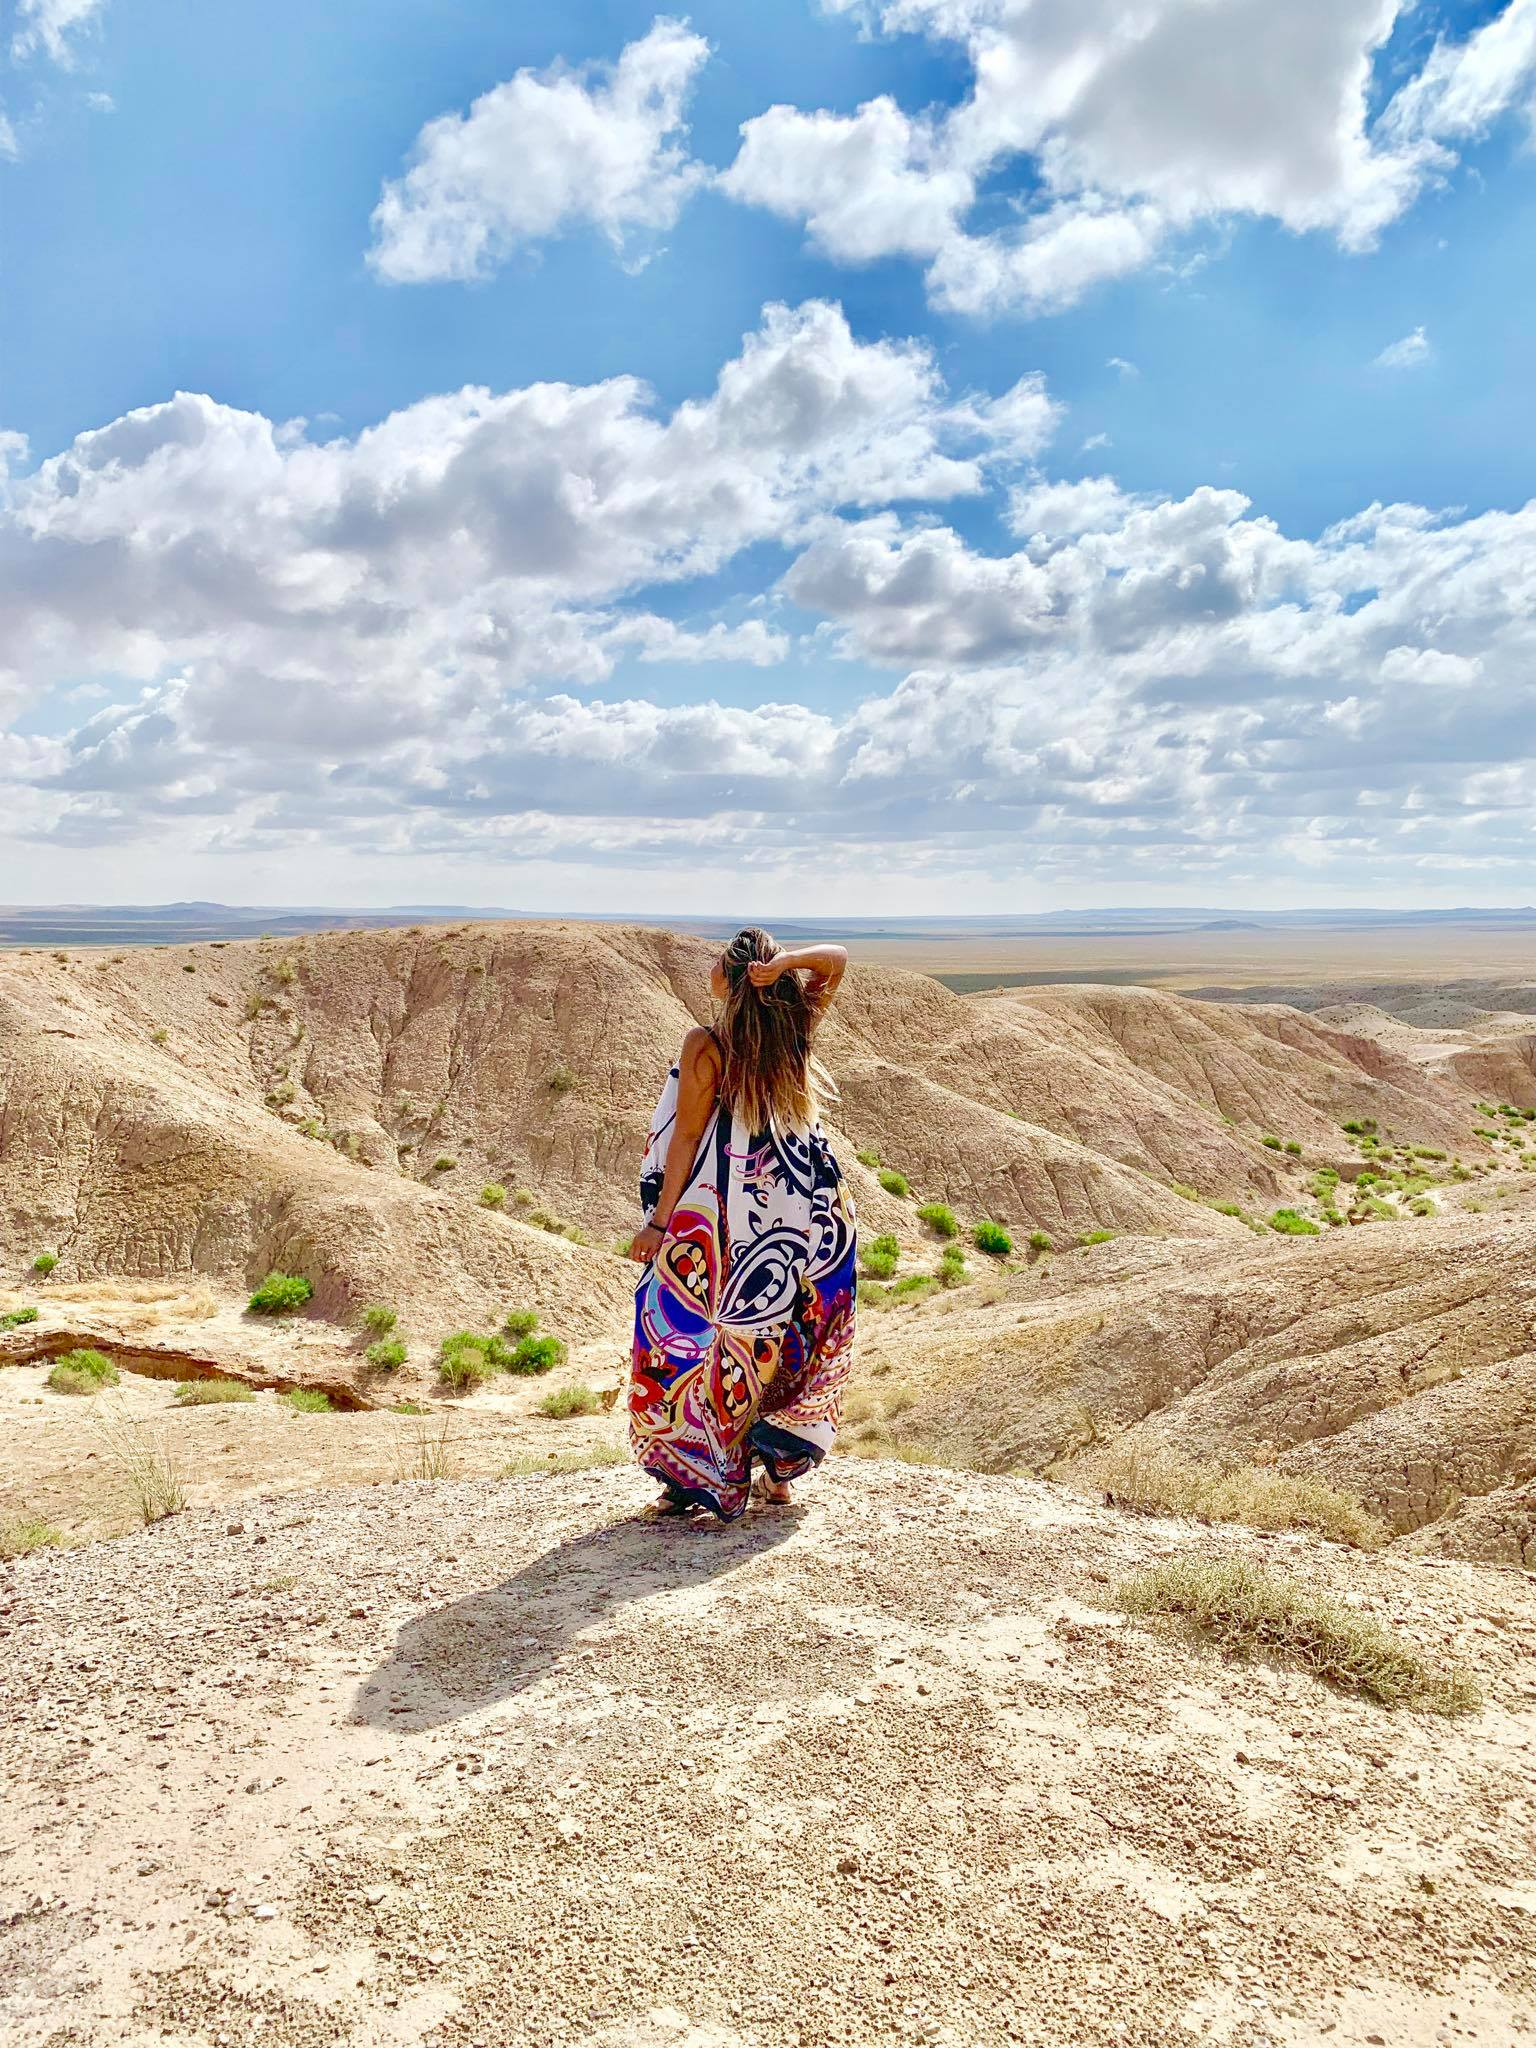 Kach Solo Travels in 2019 Gobi desert with Vast Steppe Mongolia!12.jpg